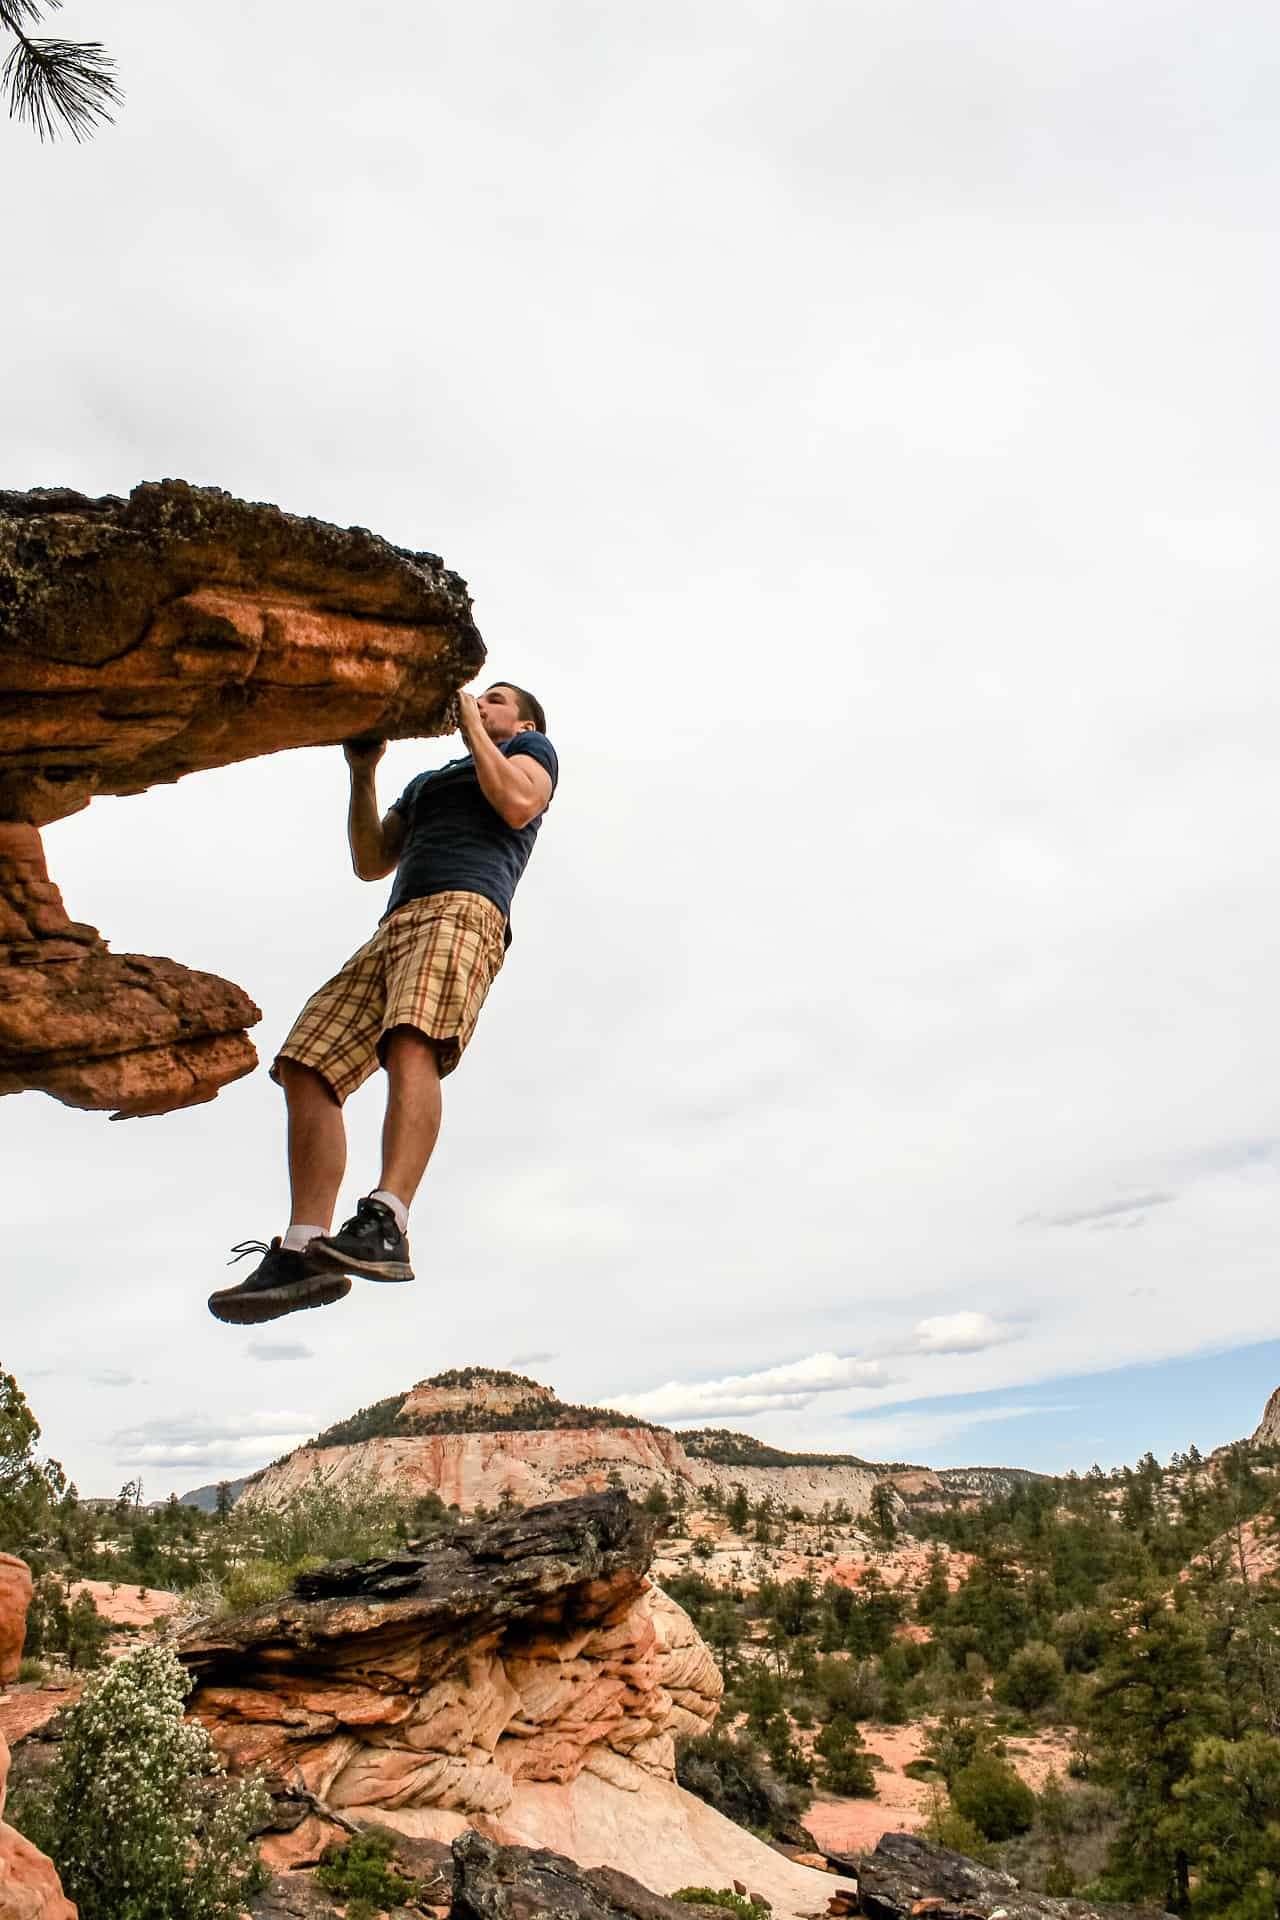 Tips For Getting Started Rock Climbing